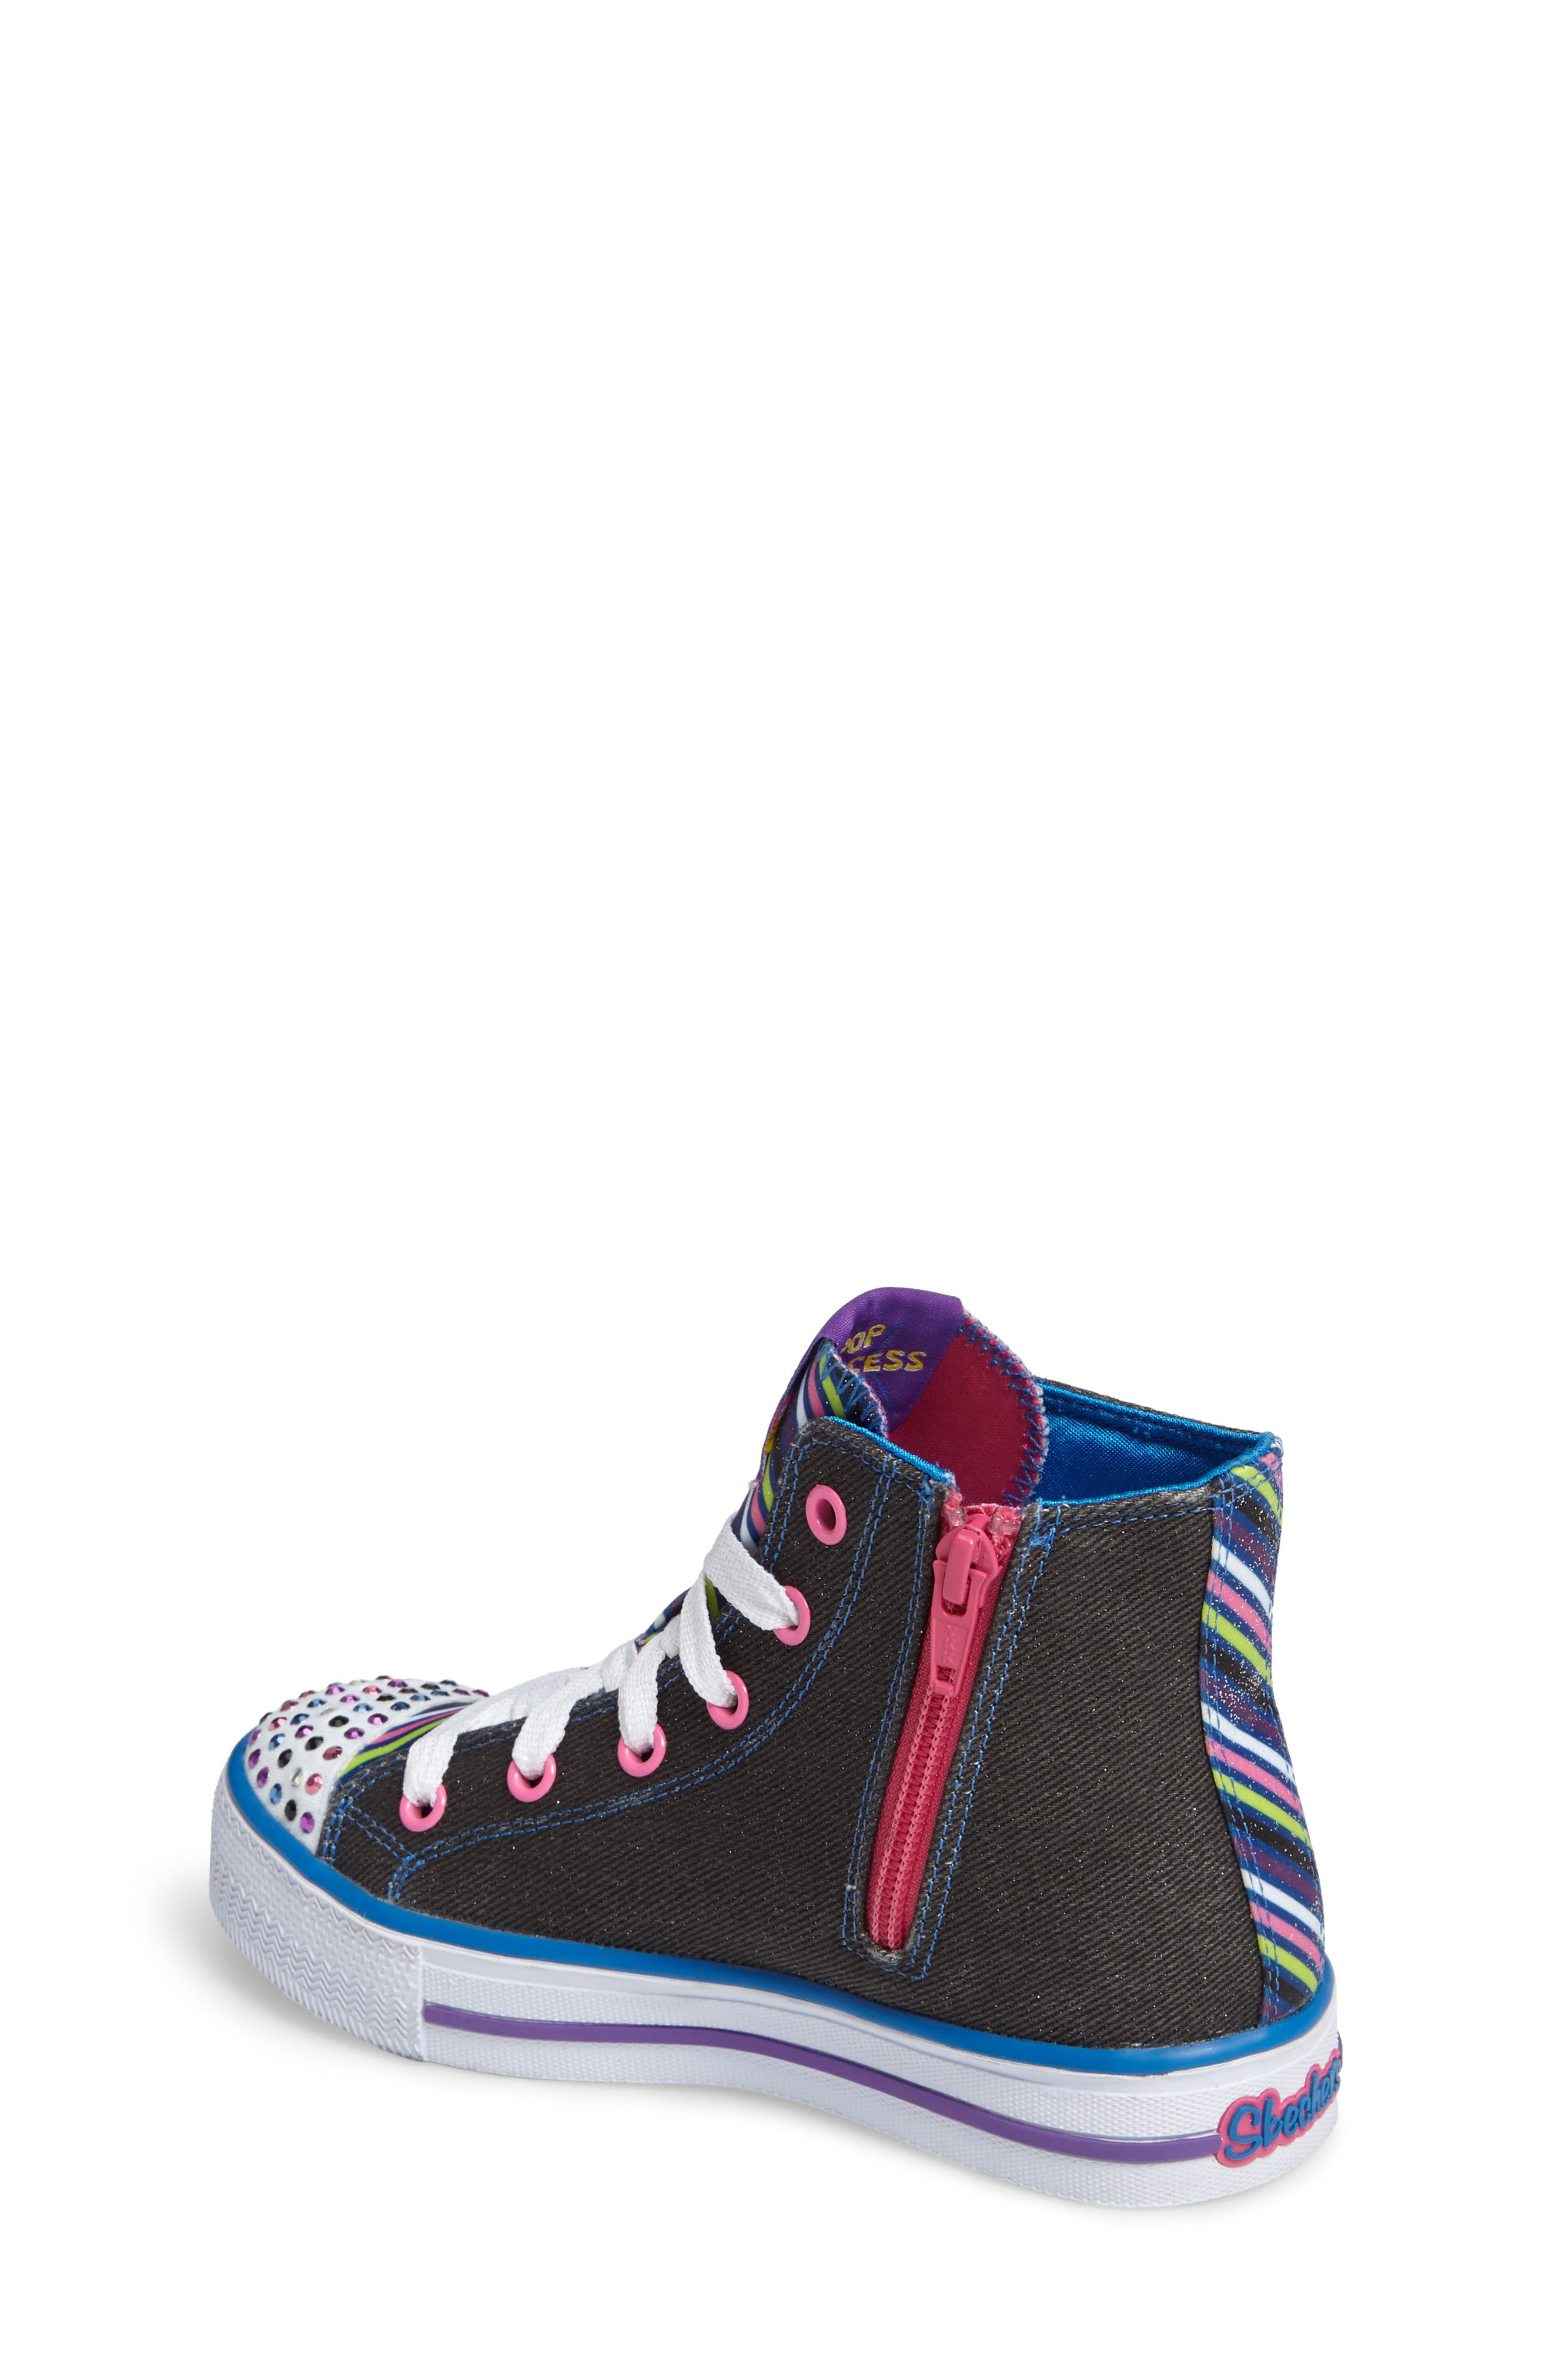 Twinkle Toes Shuffles Light-Up High Top Sneaker,                             Alternate thumbnail 2, color,